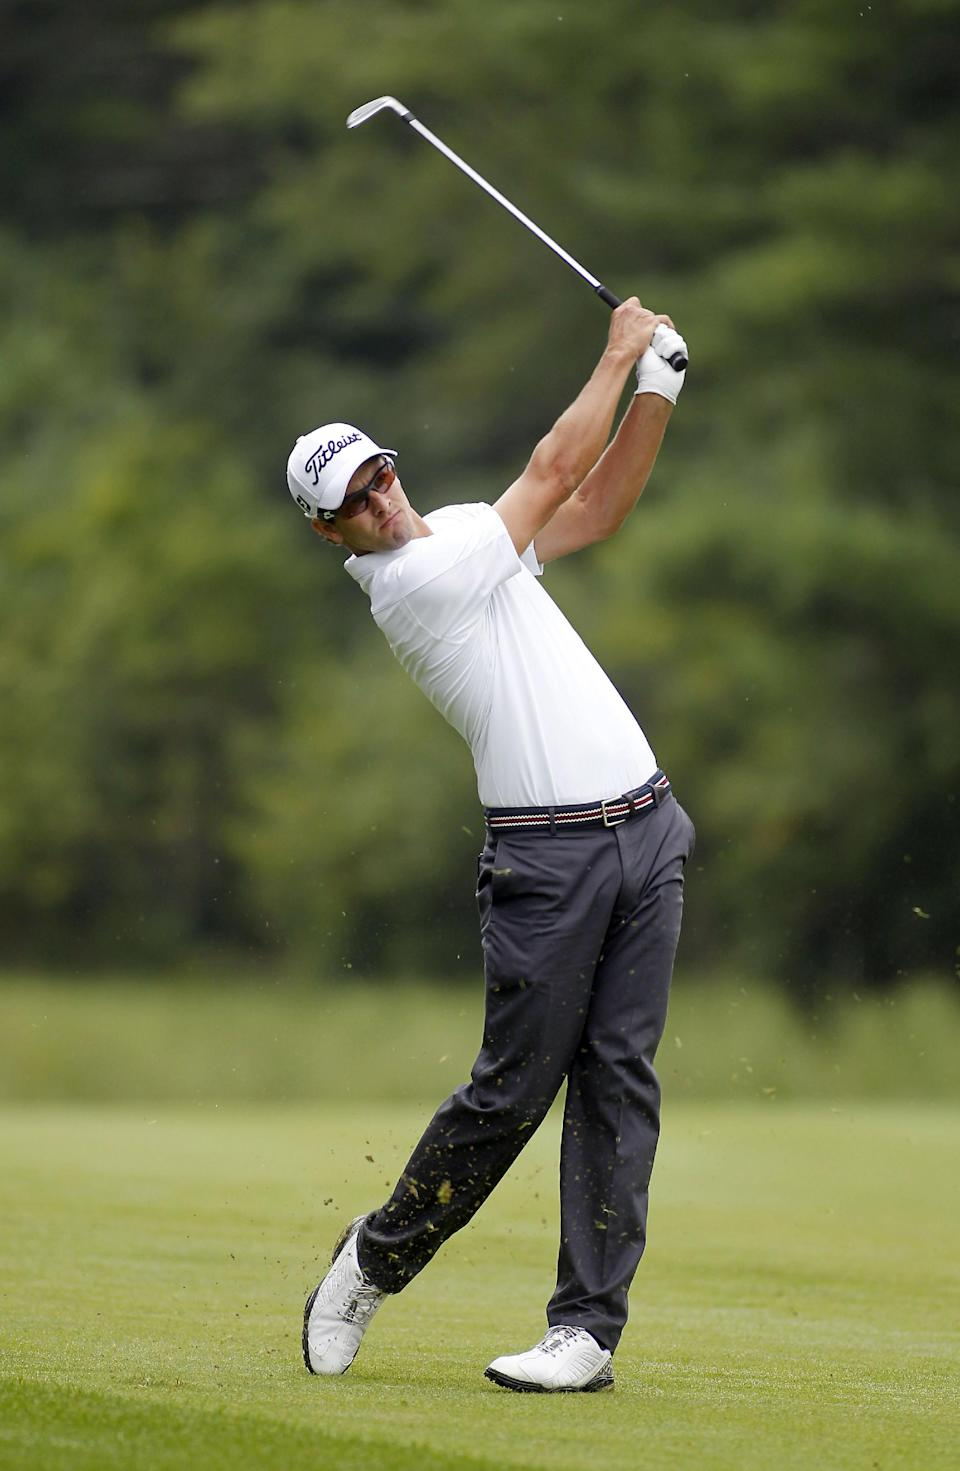 Adam Scott hits his second shot on the 10th hole during the pro-am round of the Deutsche Bank Championships in Norton, Mass., Thursday, Aug. 29, 2013. (AP Photo/Stew Milne)